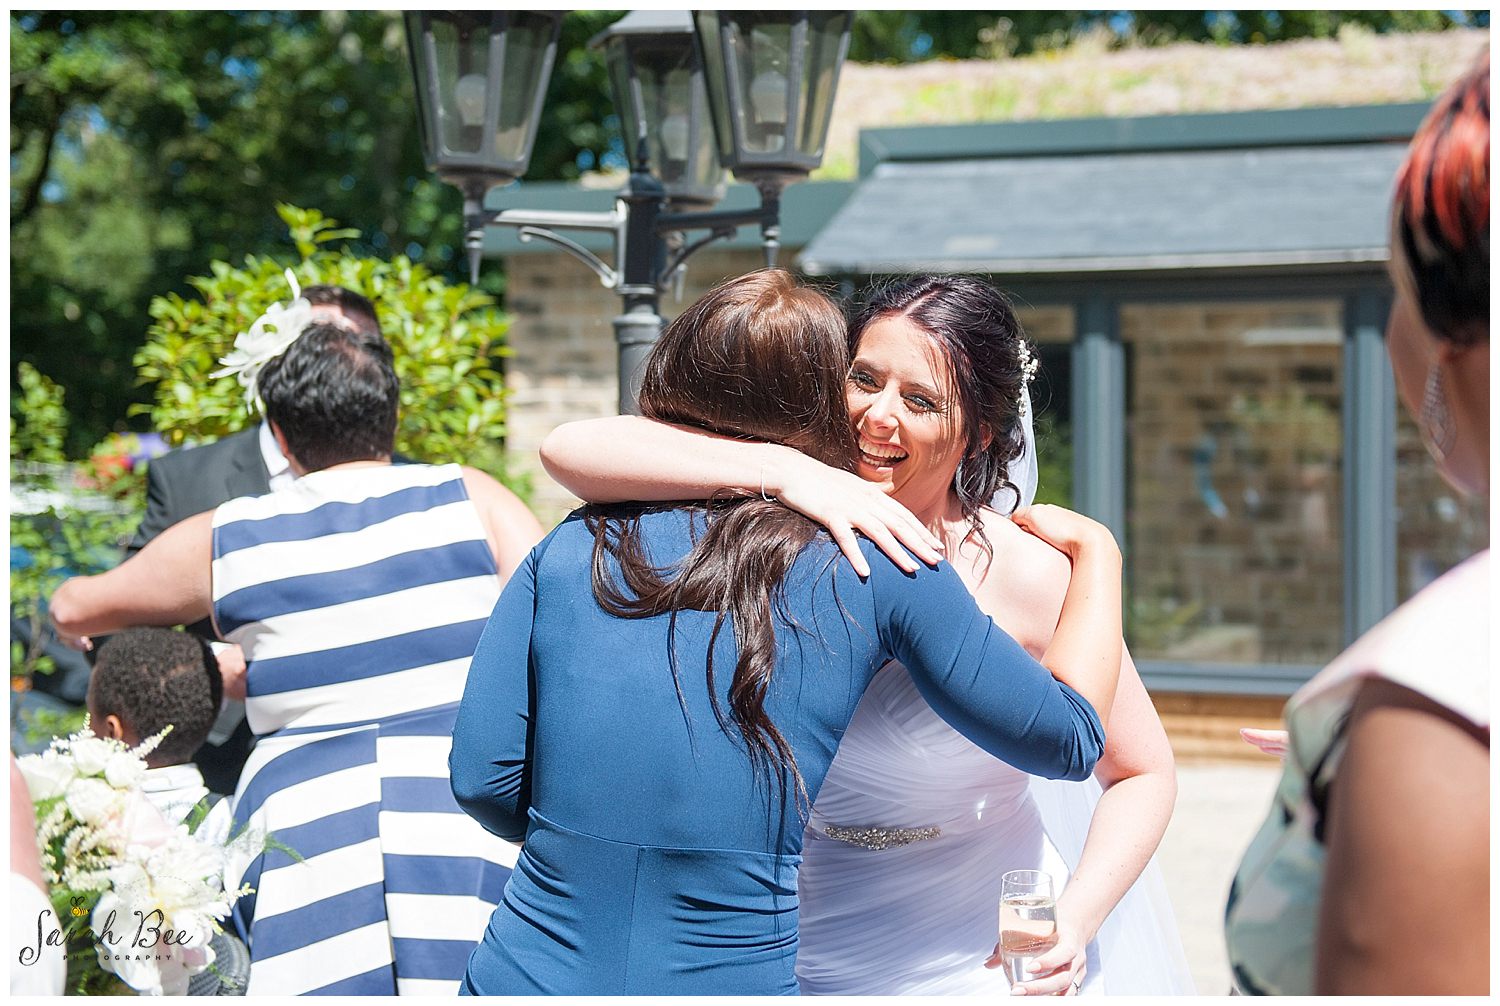 documentory wedding photography with sarah bee photography, wedding photography, wedding photographer at 315 bar and restaurant huddersfield, nateral wedding photography_0381.jpg